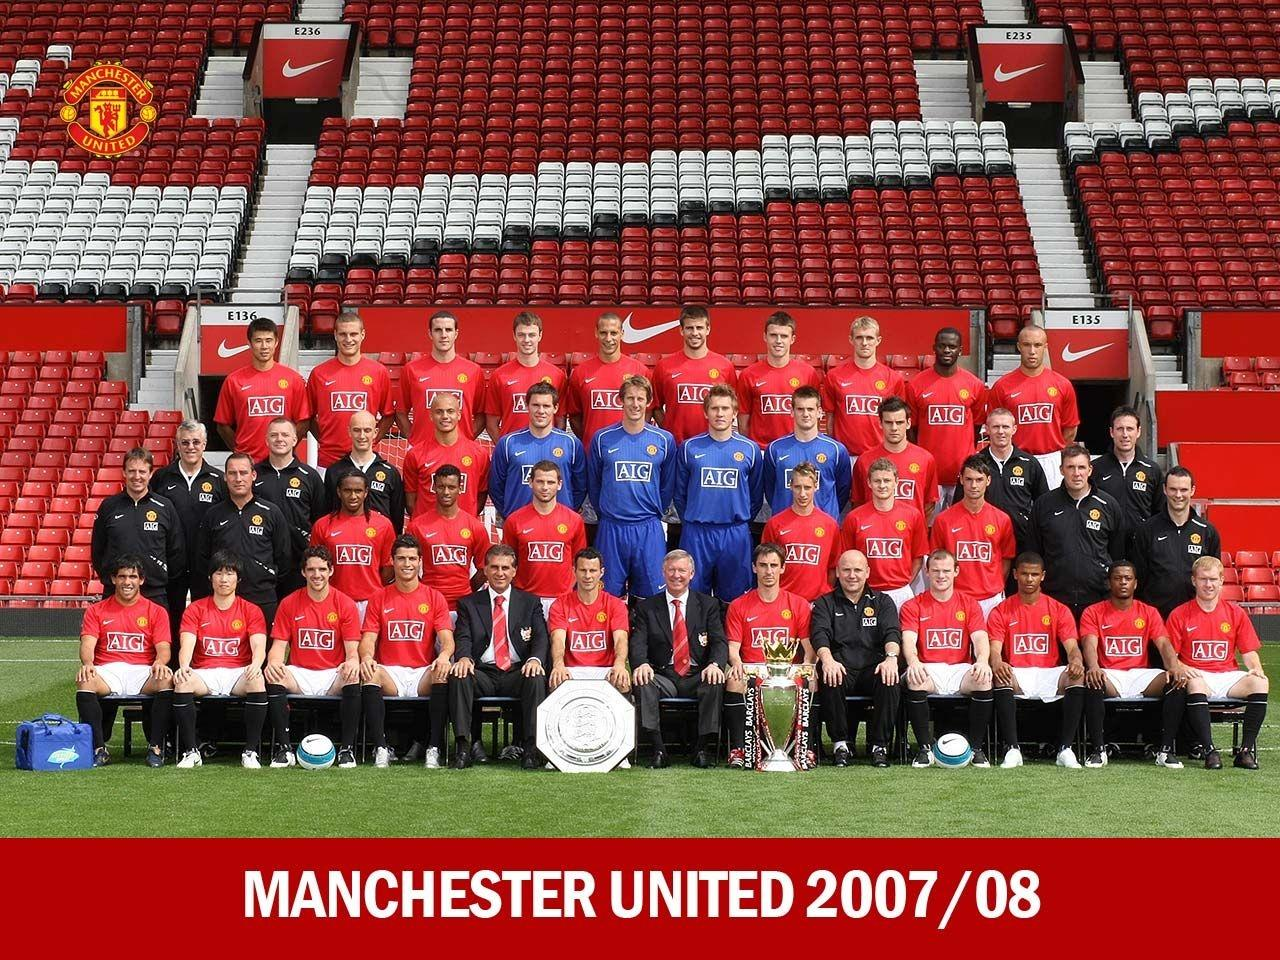 **The greatest Manchester United team of this century**